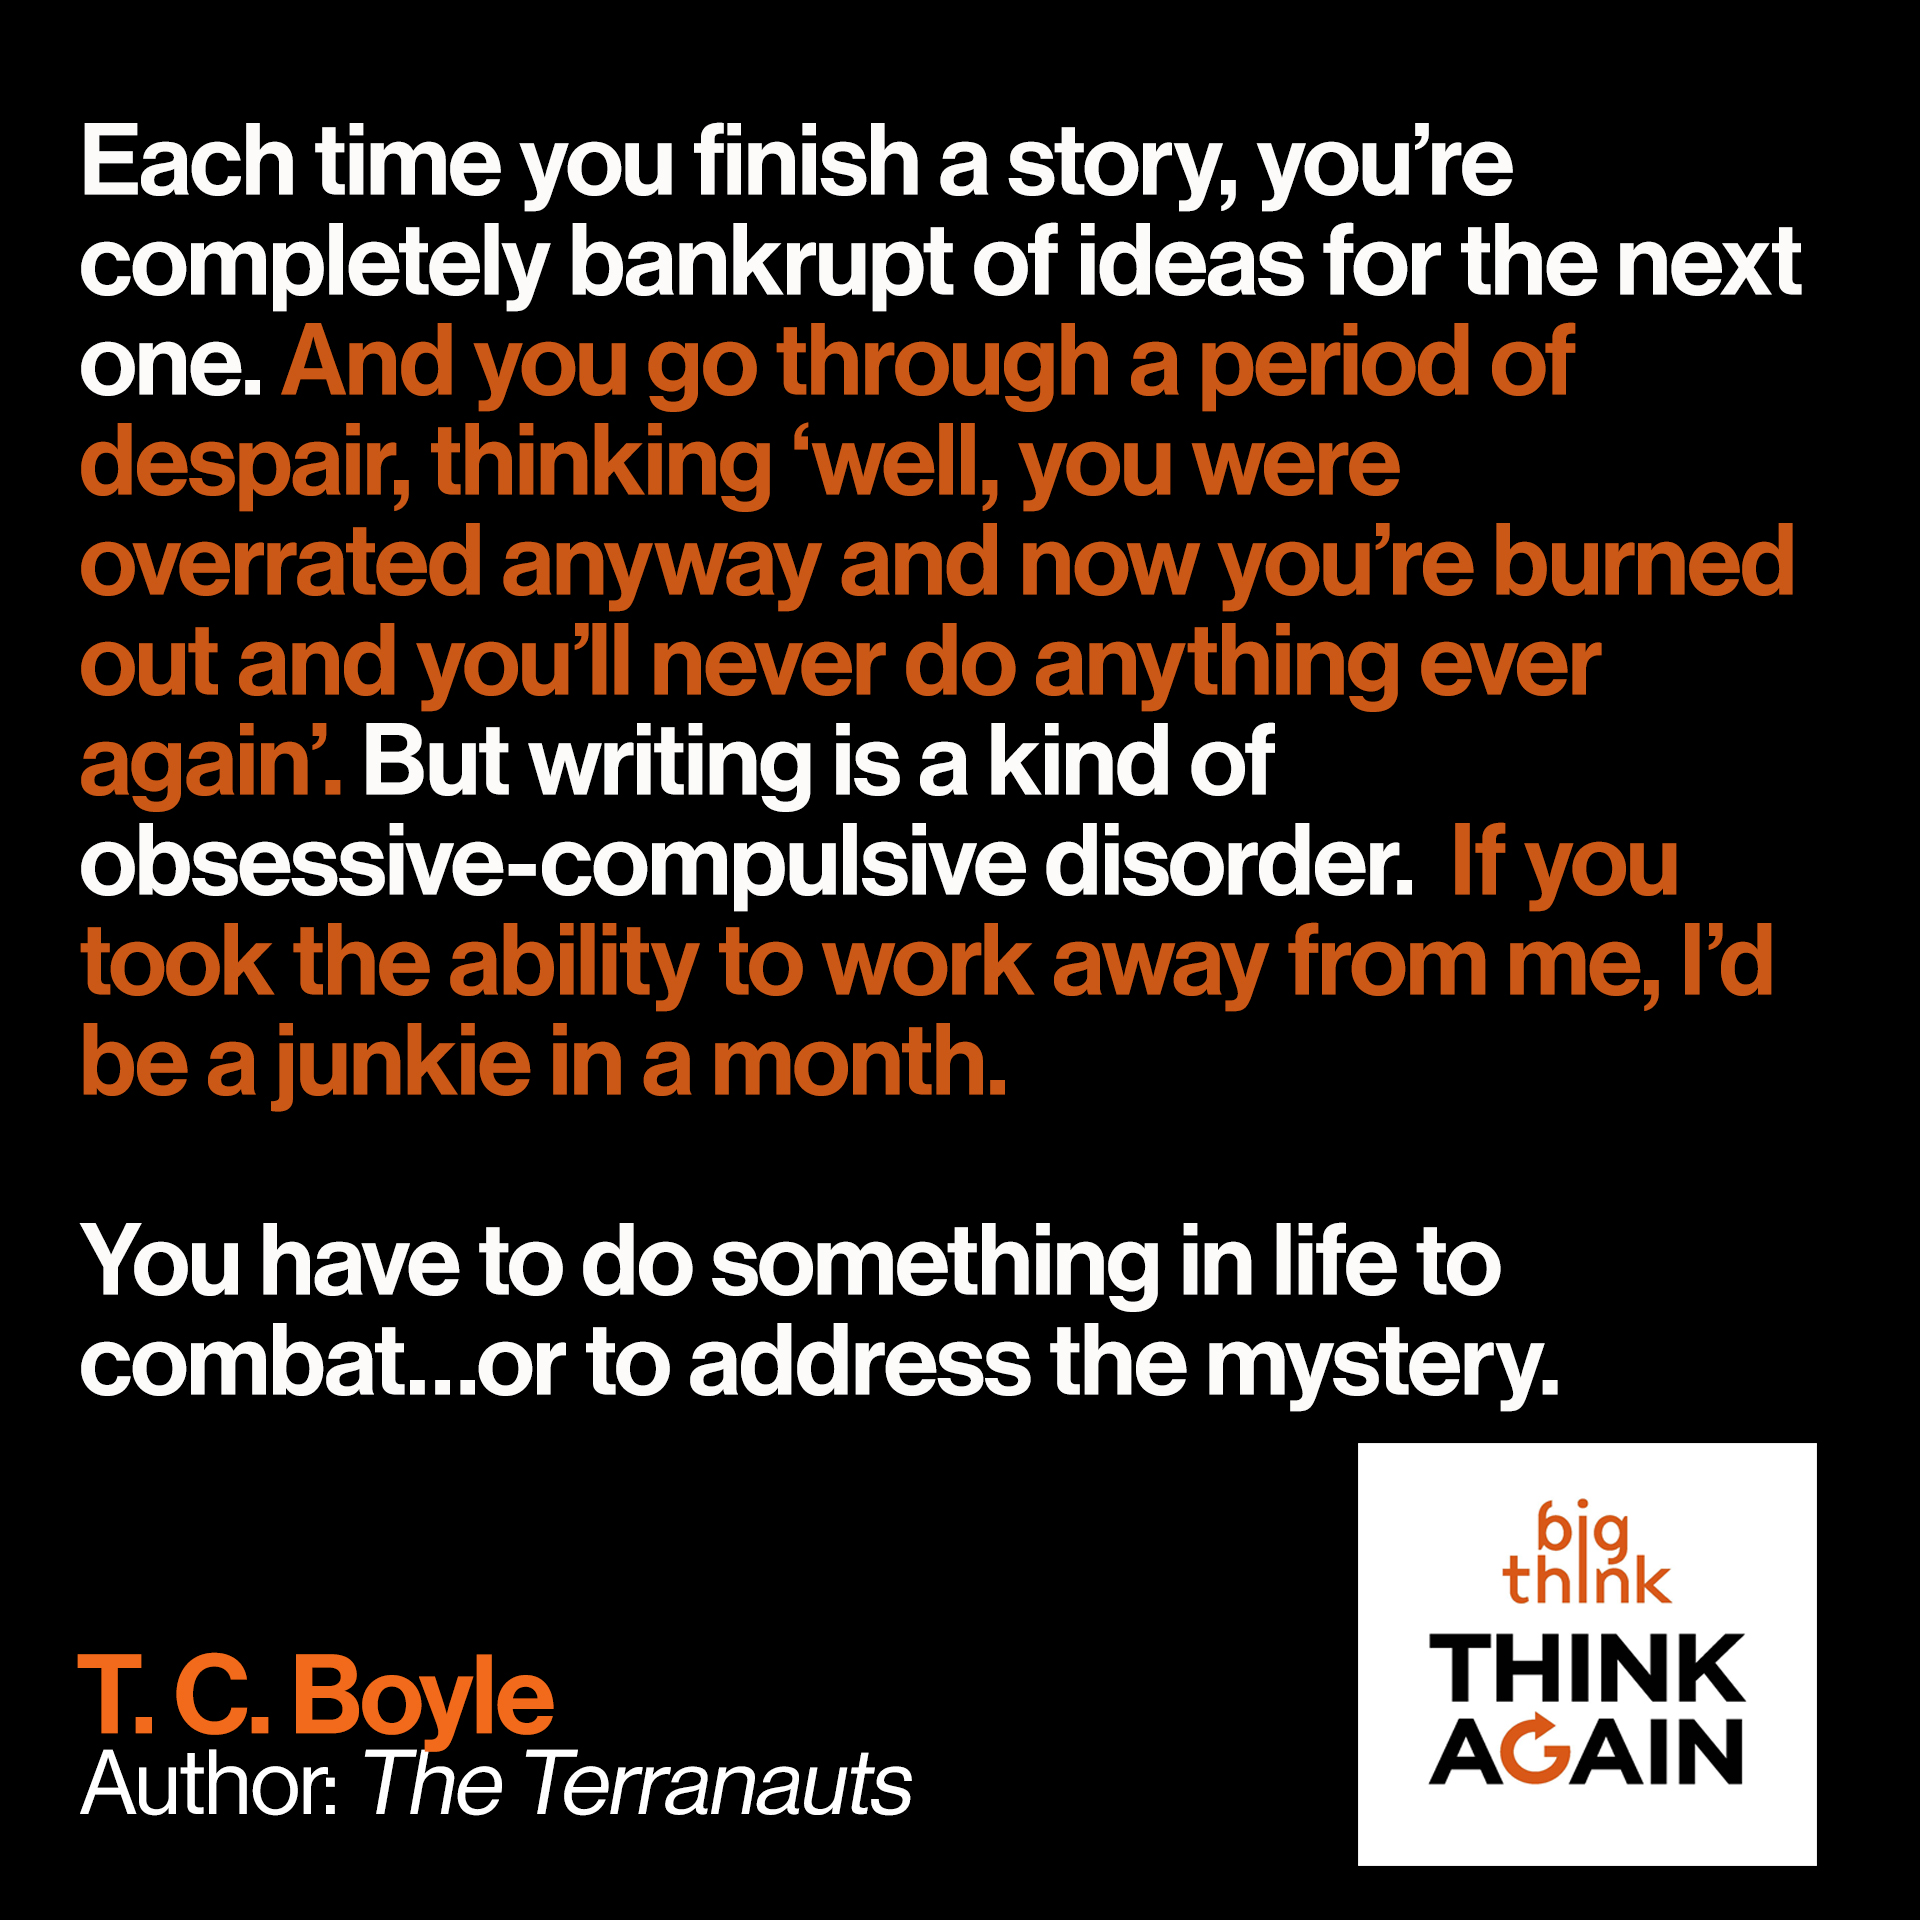 TC Boyle Quote:Each time you finish a story, you're completely bankrupt of ideas for the next one. And you go through a period of despair, thinking 'well, you were overrated anyway and now you're burned out and you'll never do anything ever again'. But writing is a kind of obsessive-compulsive disorder.  If you took the ability to work away from me, I'd be a junkie in a month. You have to do something in life to combat…or to address the mystery.